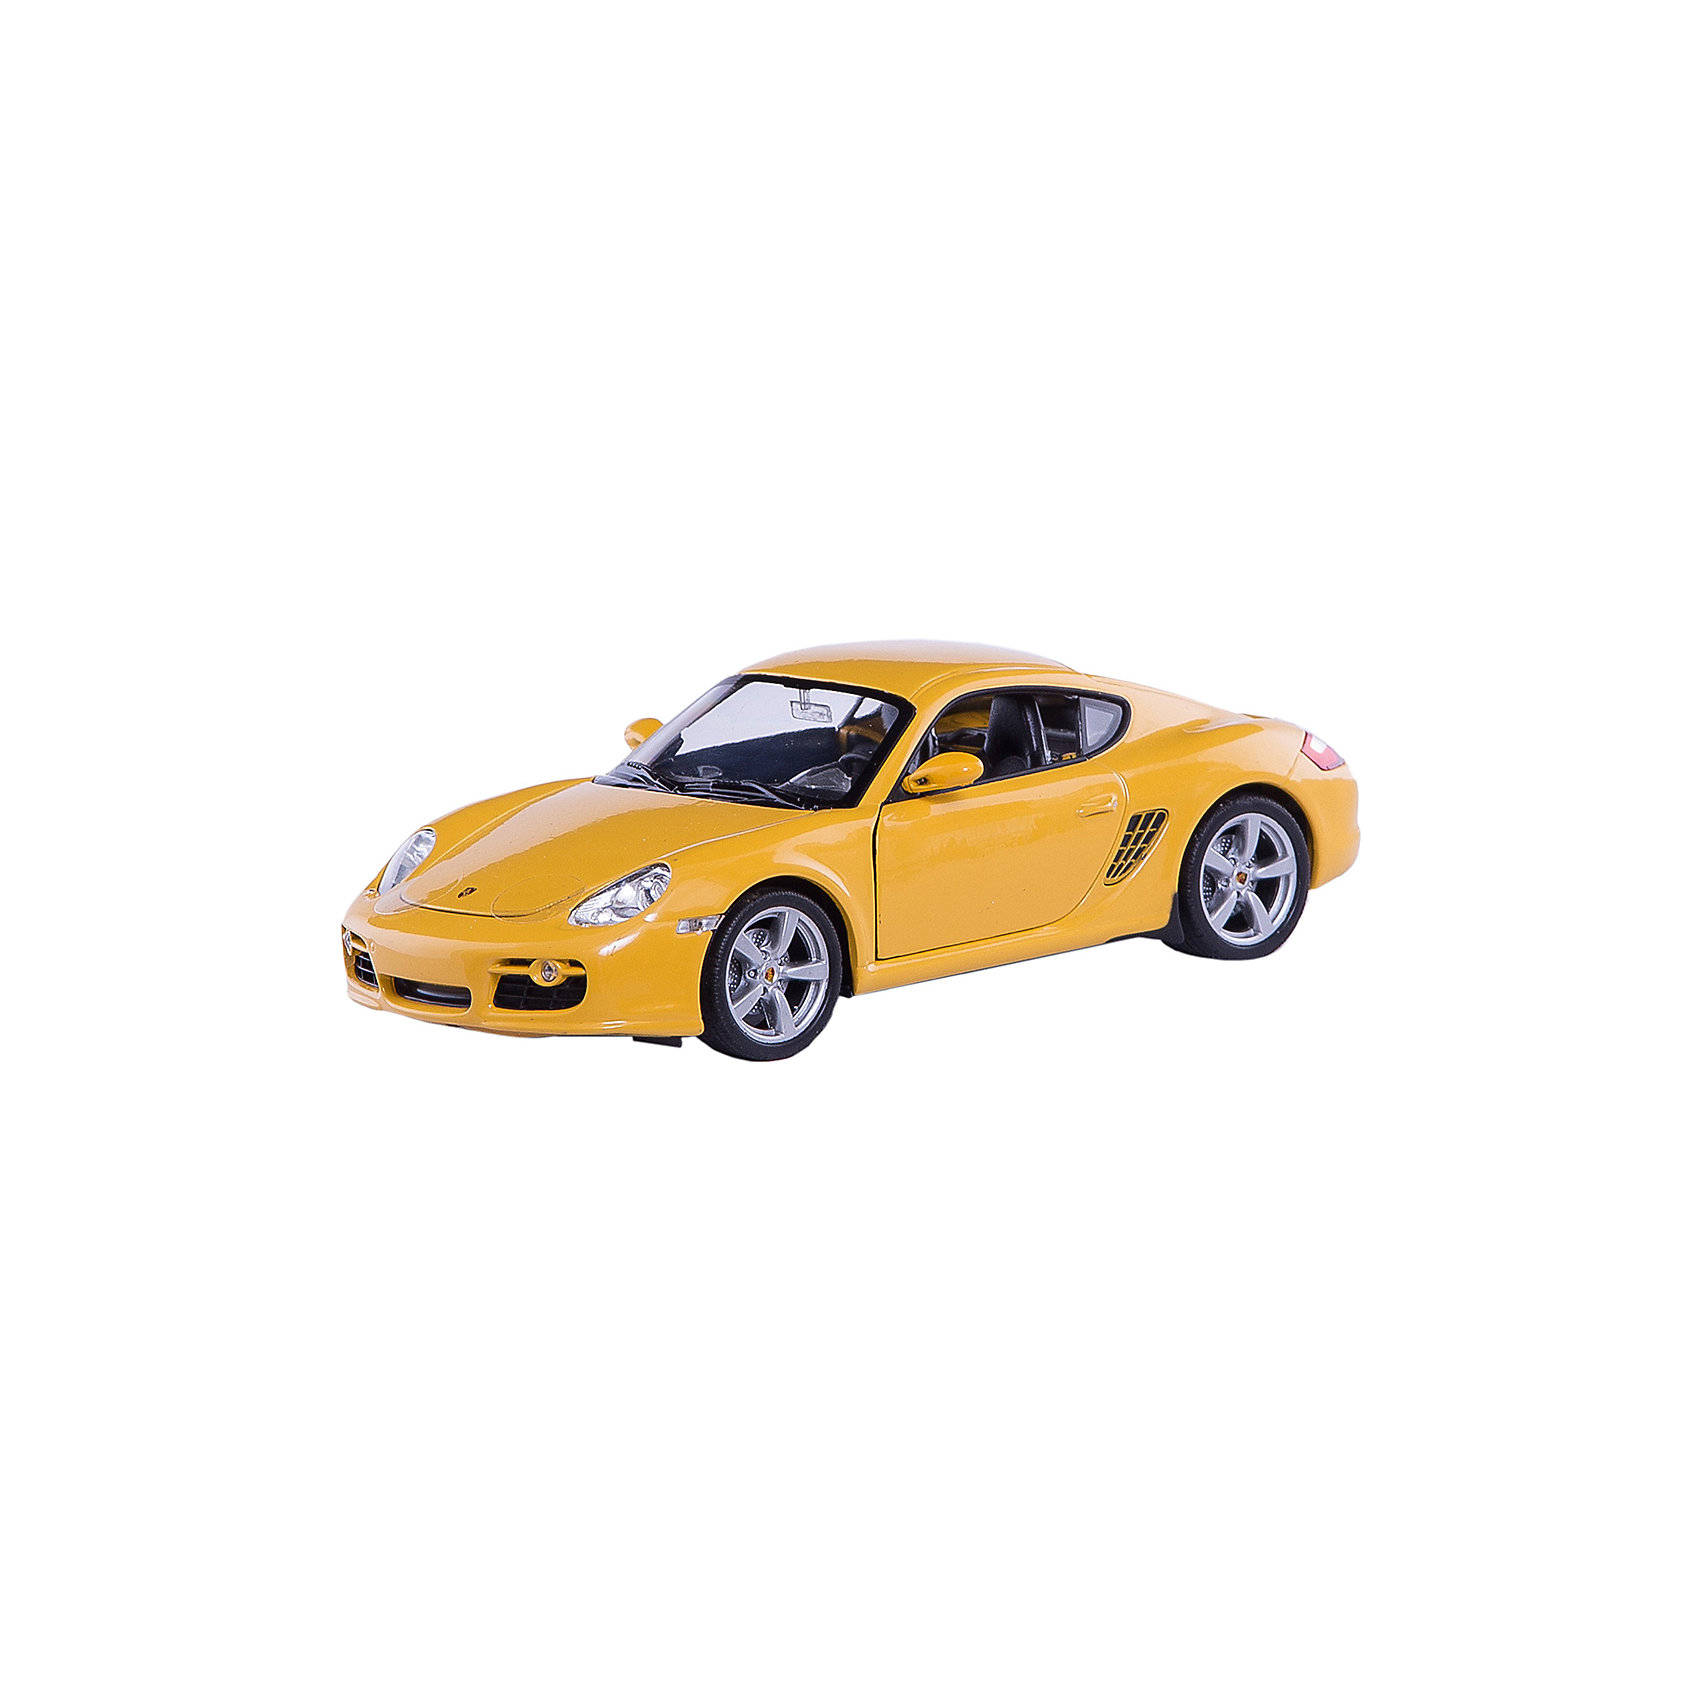 Welly Модель машины 1:24 Porsche Cayman S, Welly машинки s s космо page 10